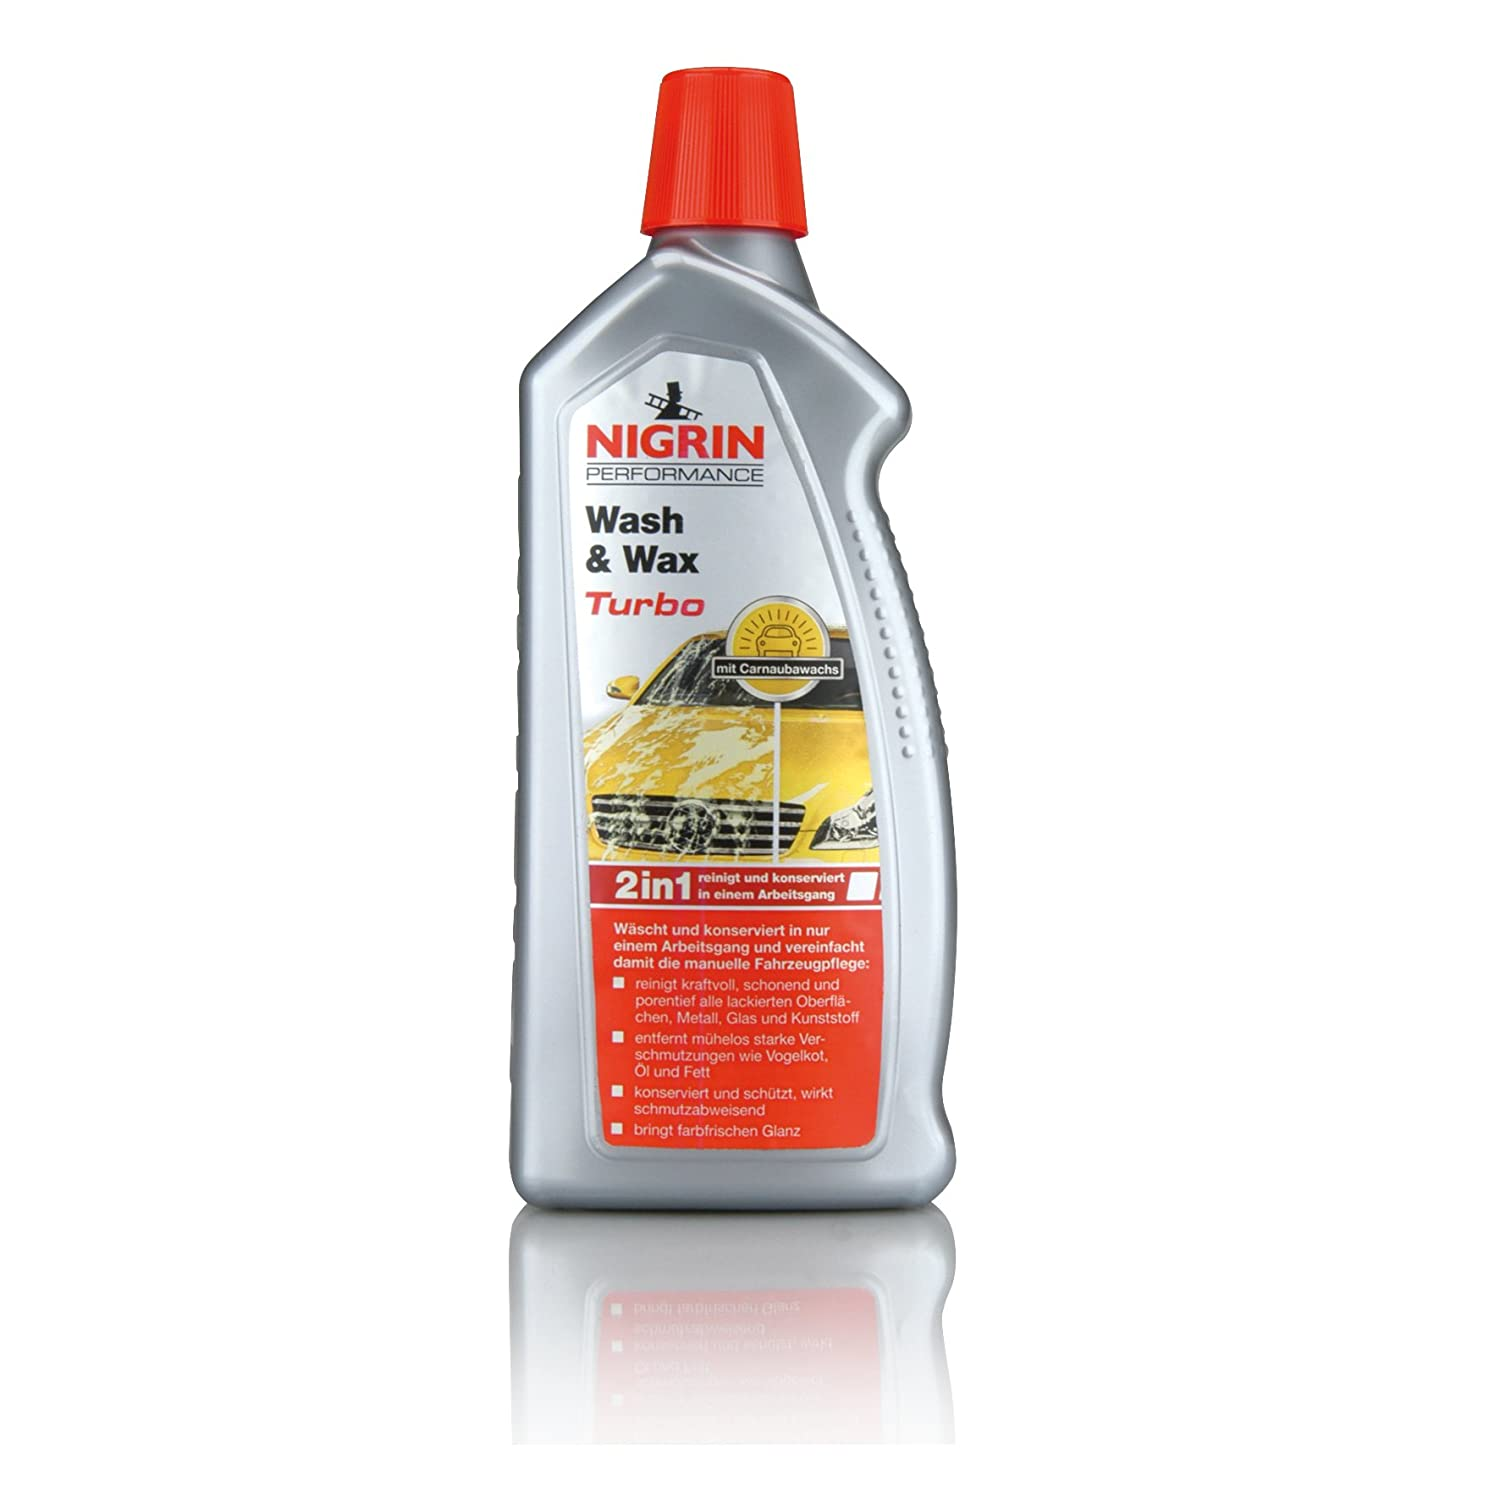 Nigrin 73878 Performance Wash und Wax Turbo, 1 L